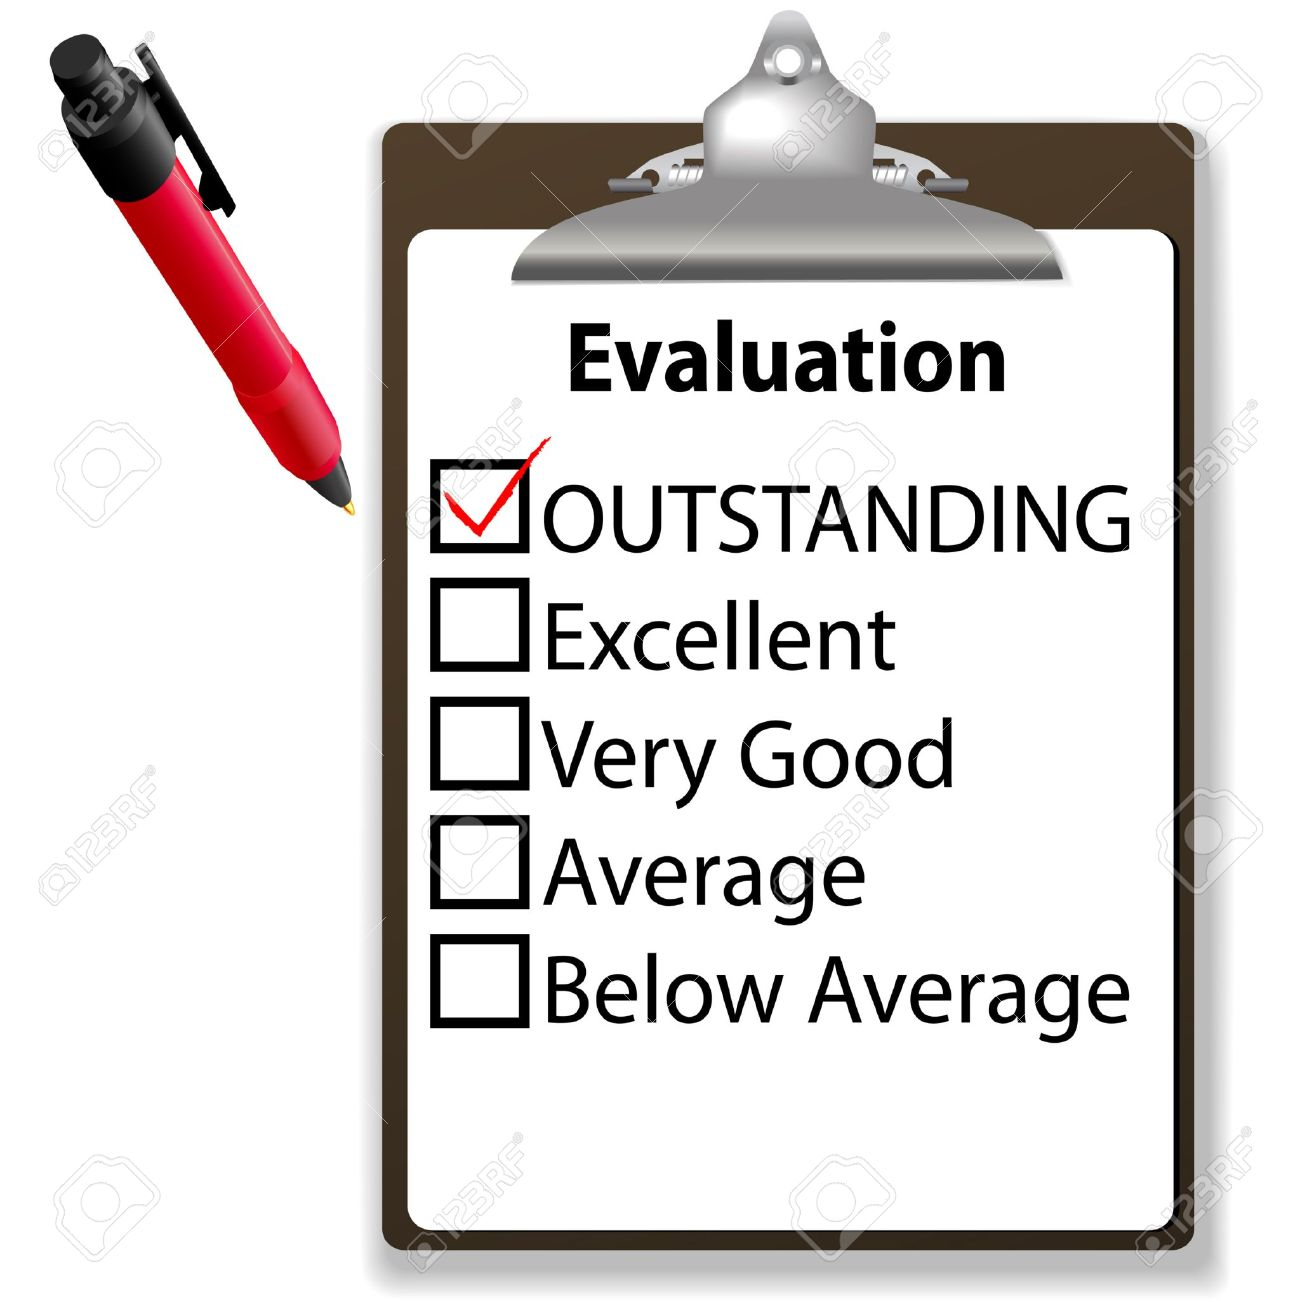 Evaluation clipart - Clipground